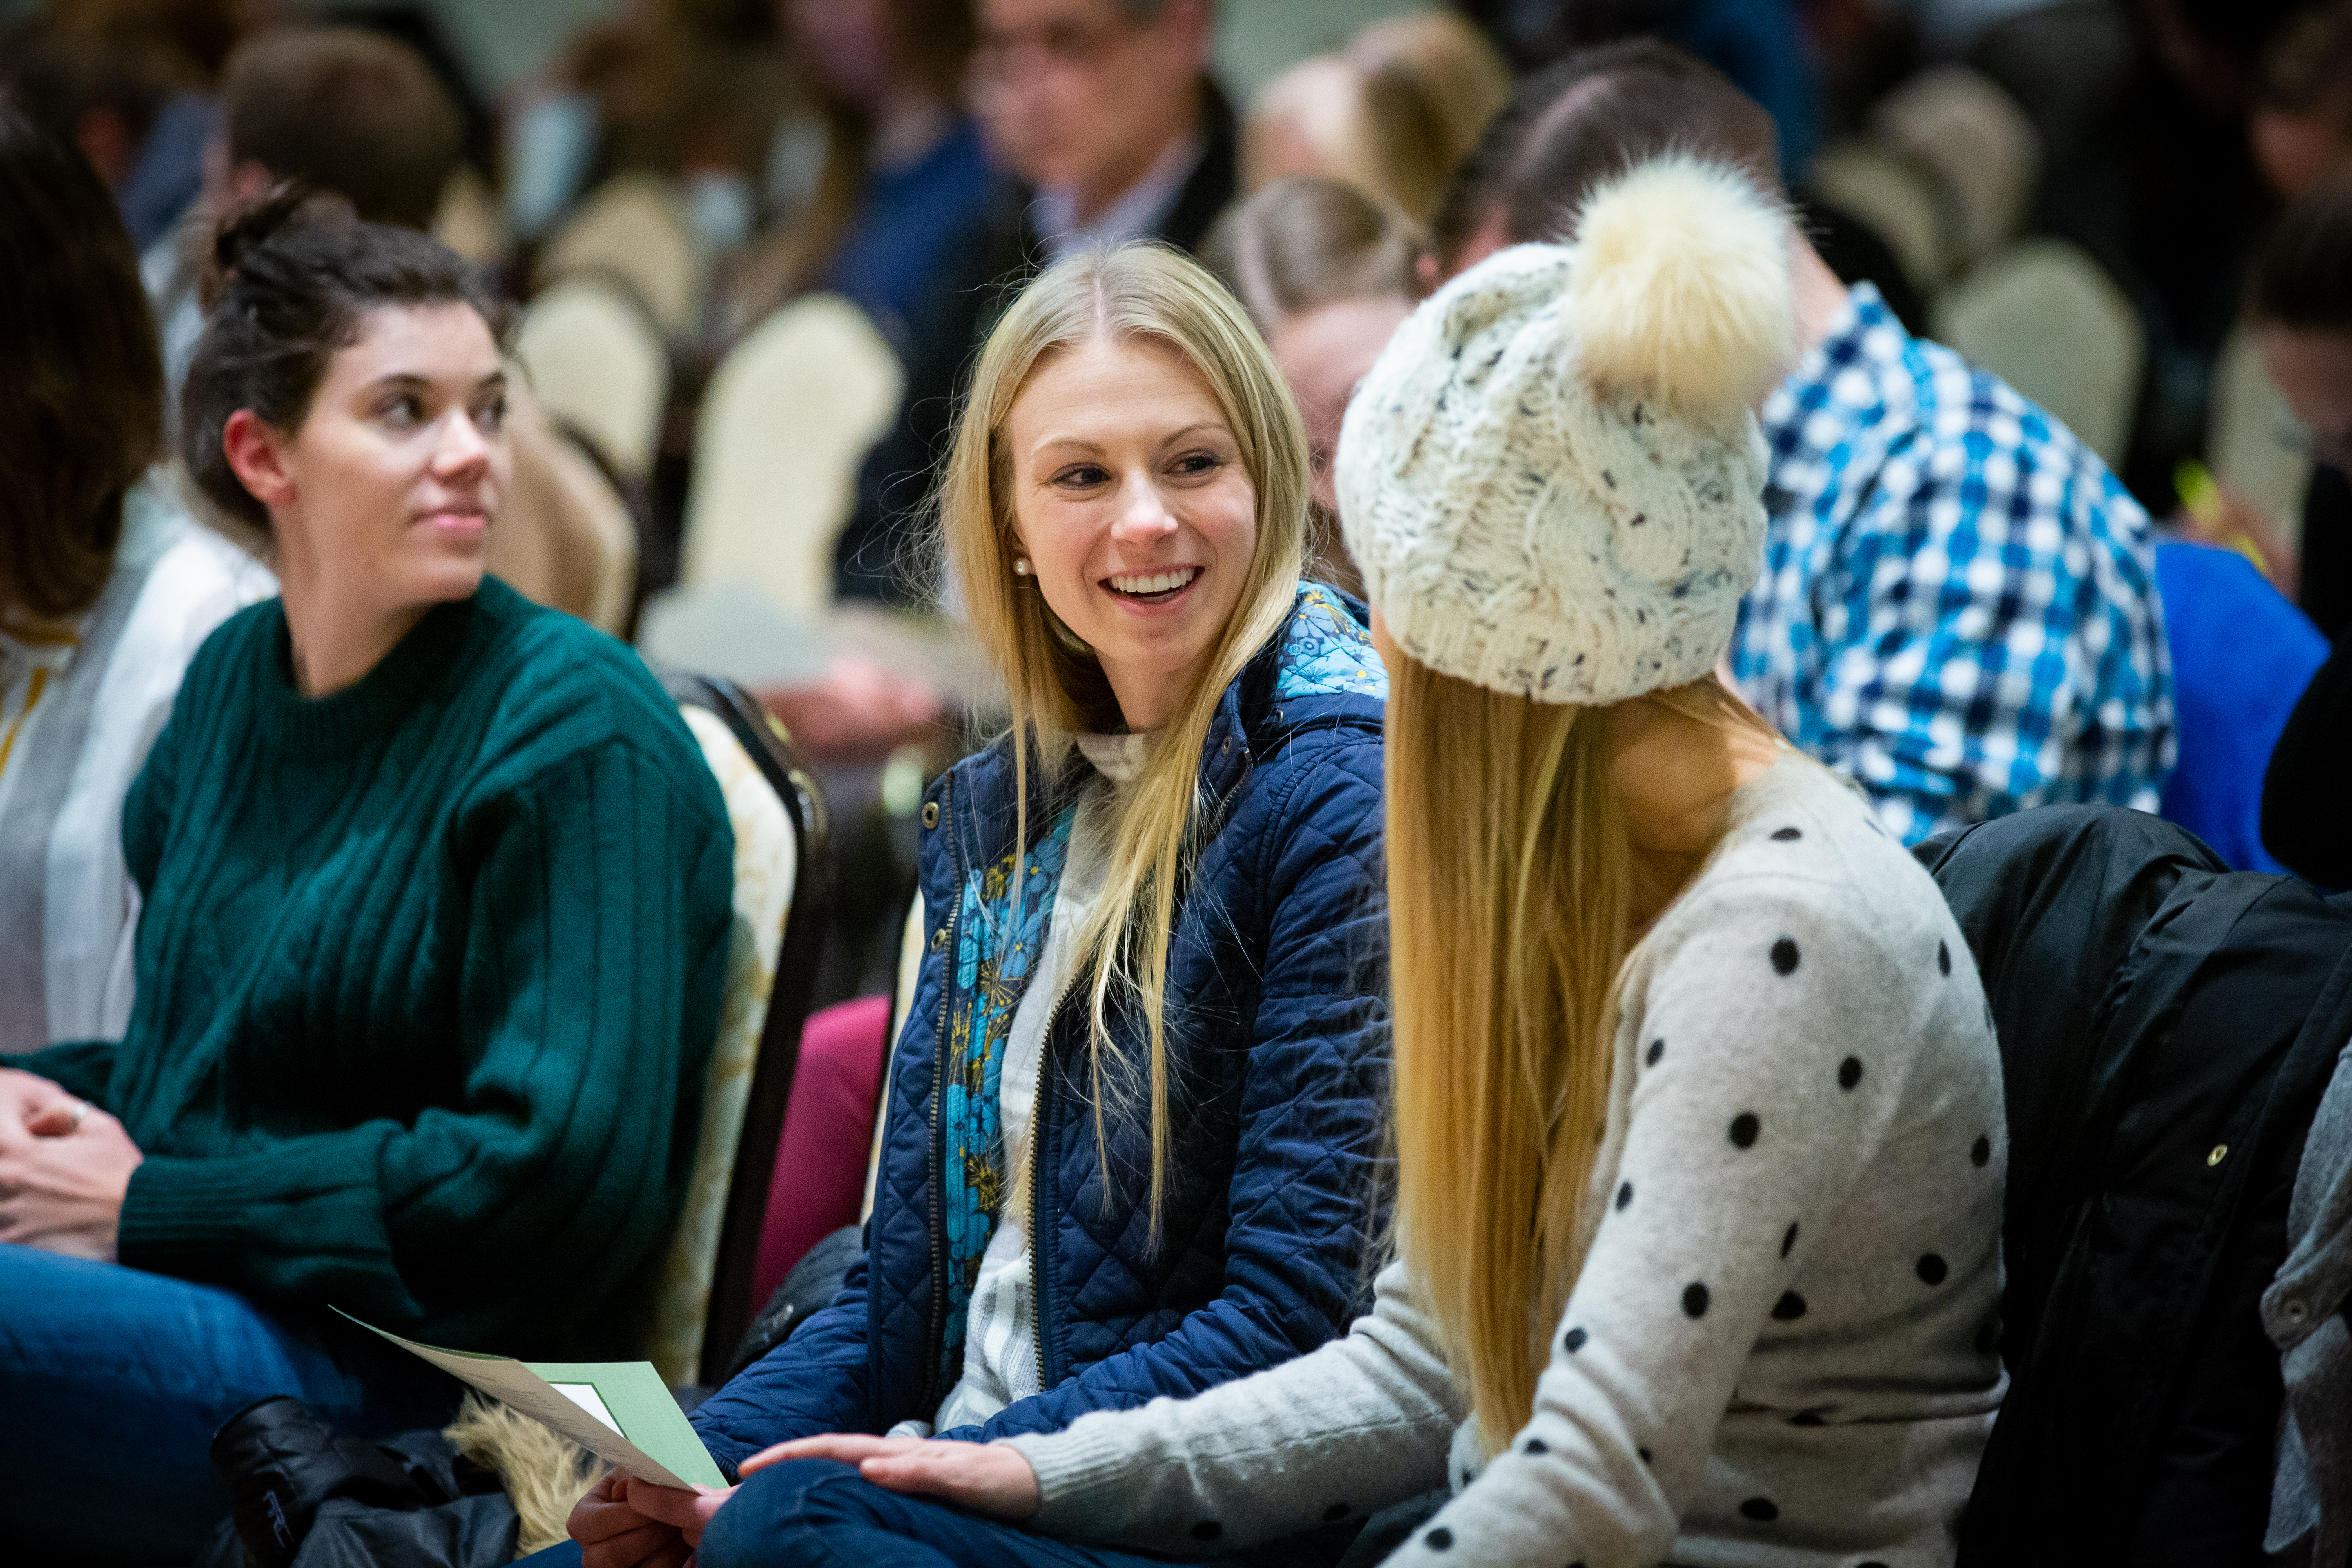 Students attending the 15th Annual Marjorie Pay Hinckley Lecture chat prior to the lecture on Feb. 7, 2019 on the BYU Provo, Utah campus.